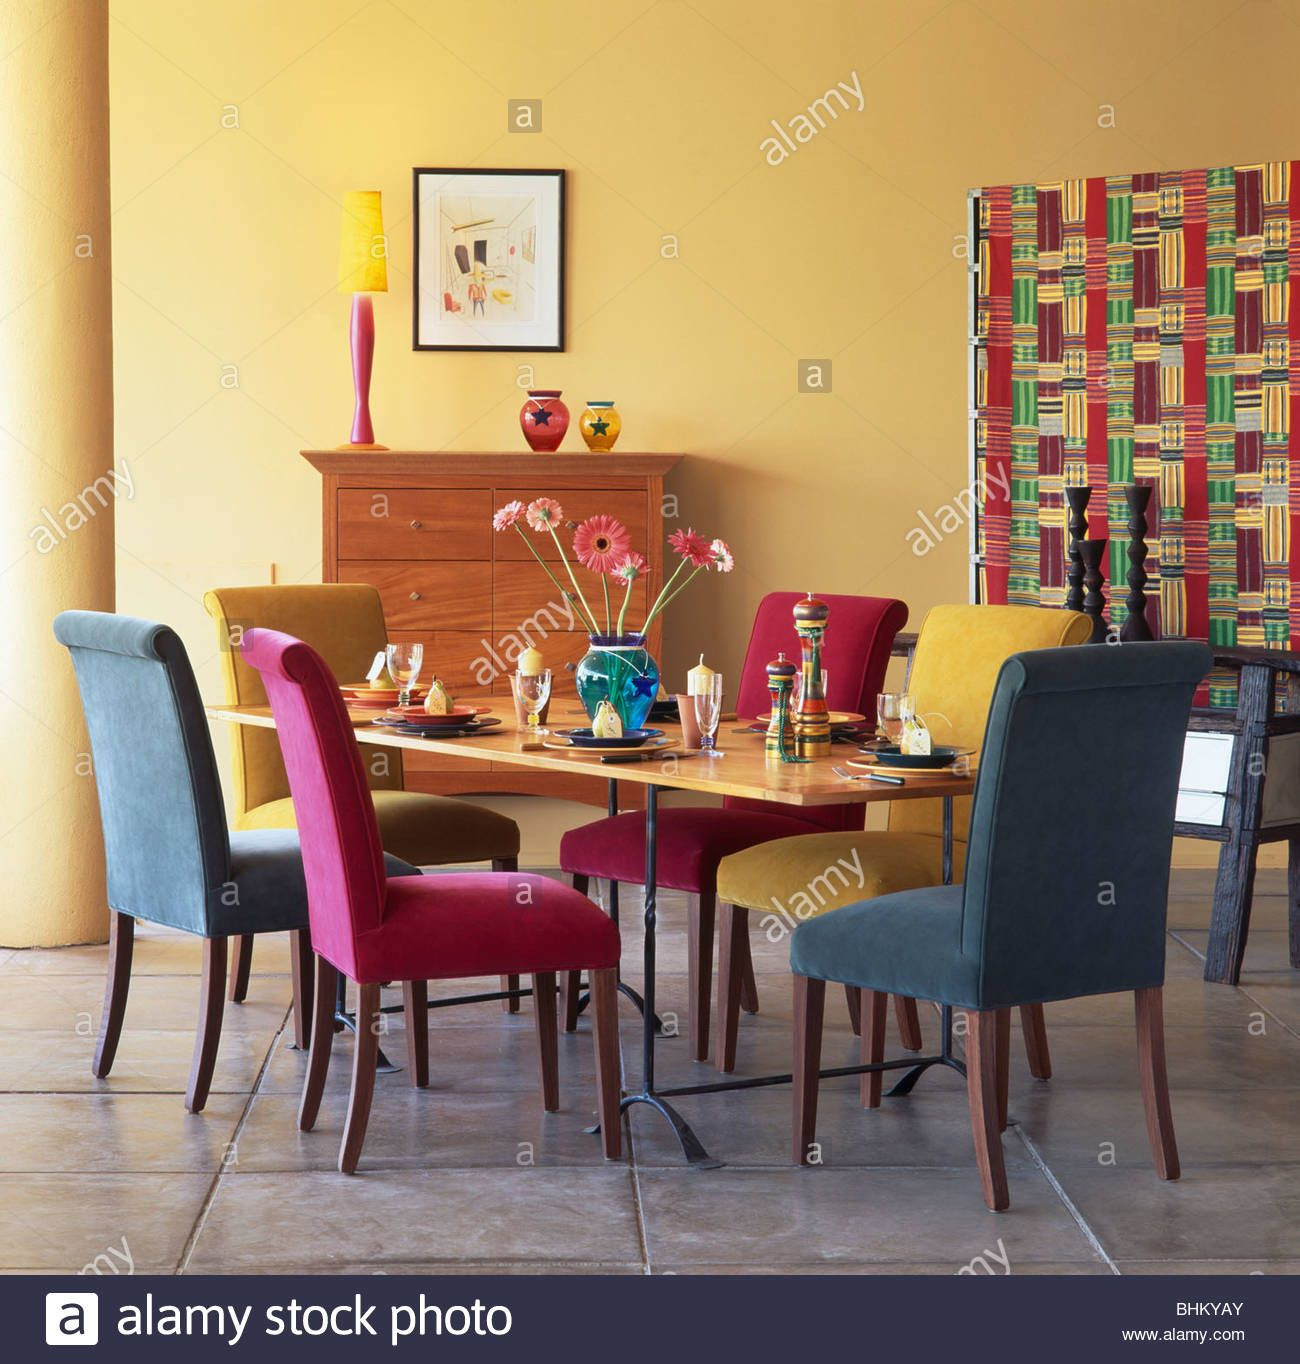 Dining Room Multicolored Chairs Pink Turquoise And Blue Velour Upholstered Dining Chairs Dining Room Colors Dining Room Sets Round Dining Room Sets